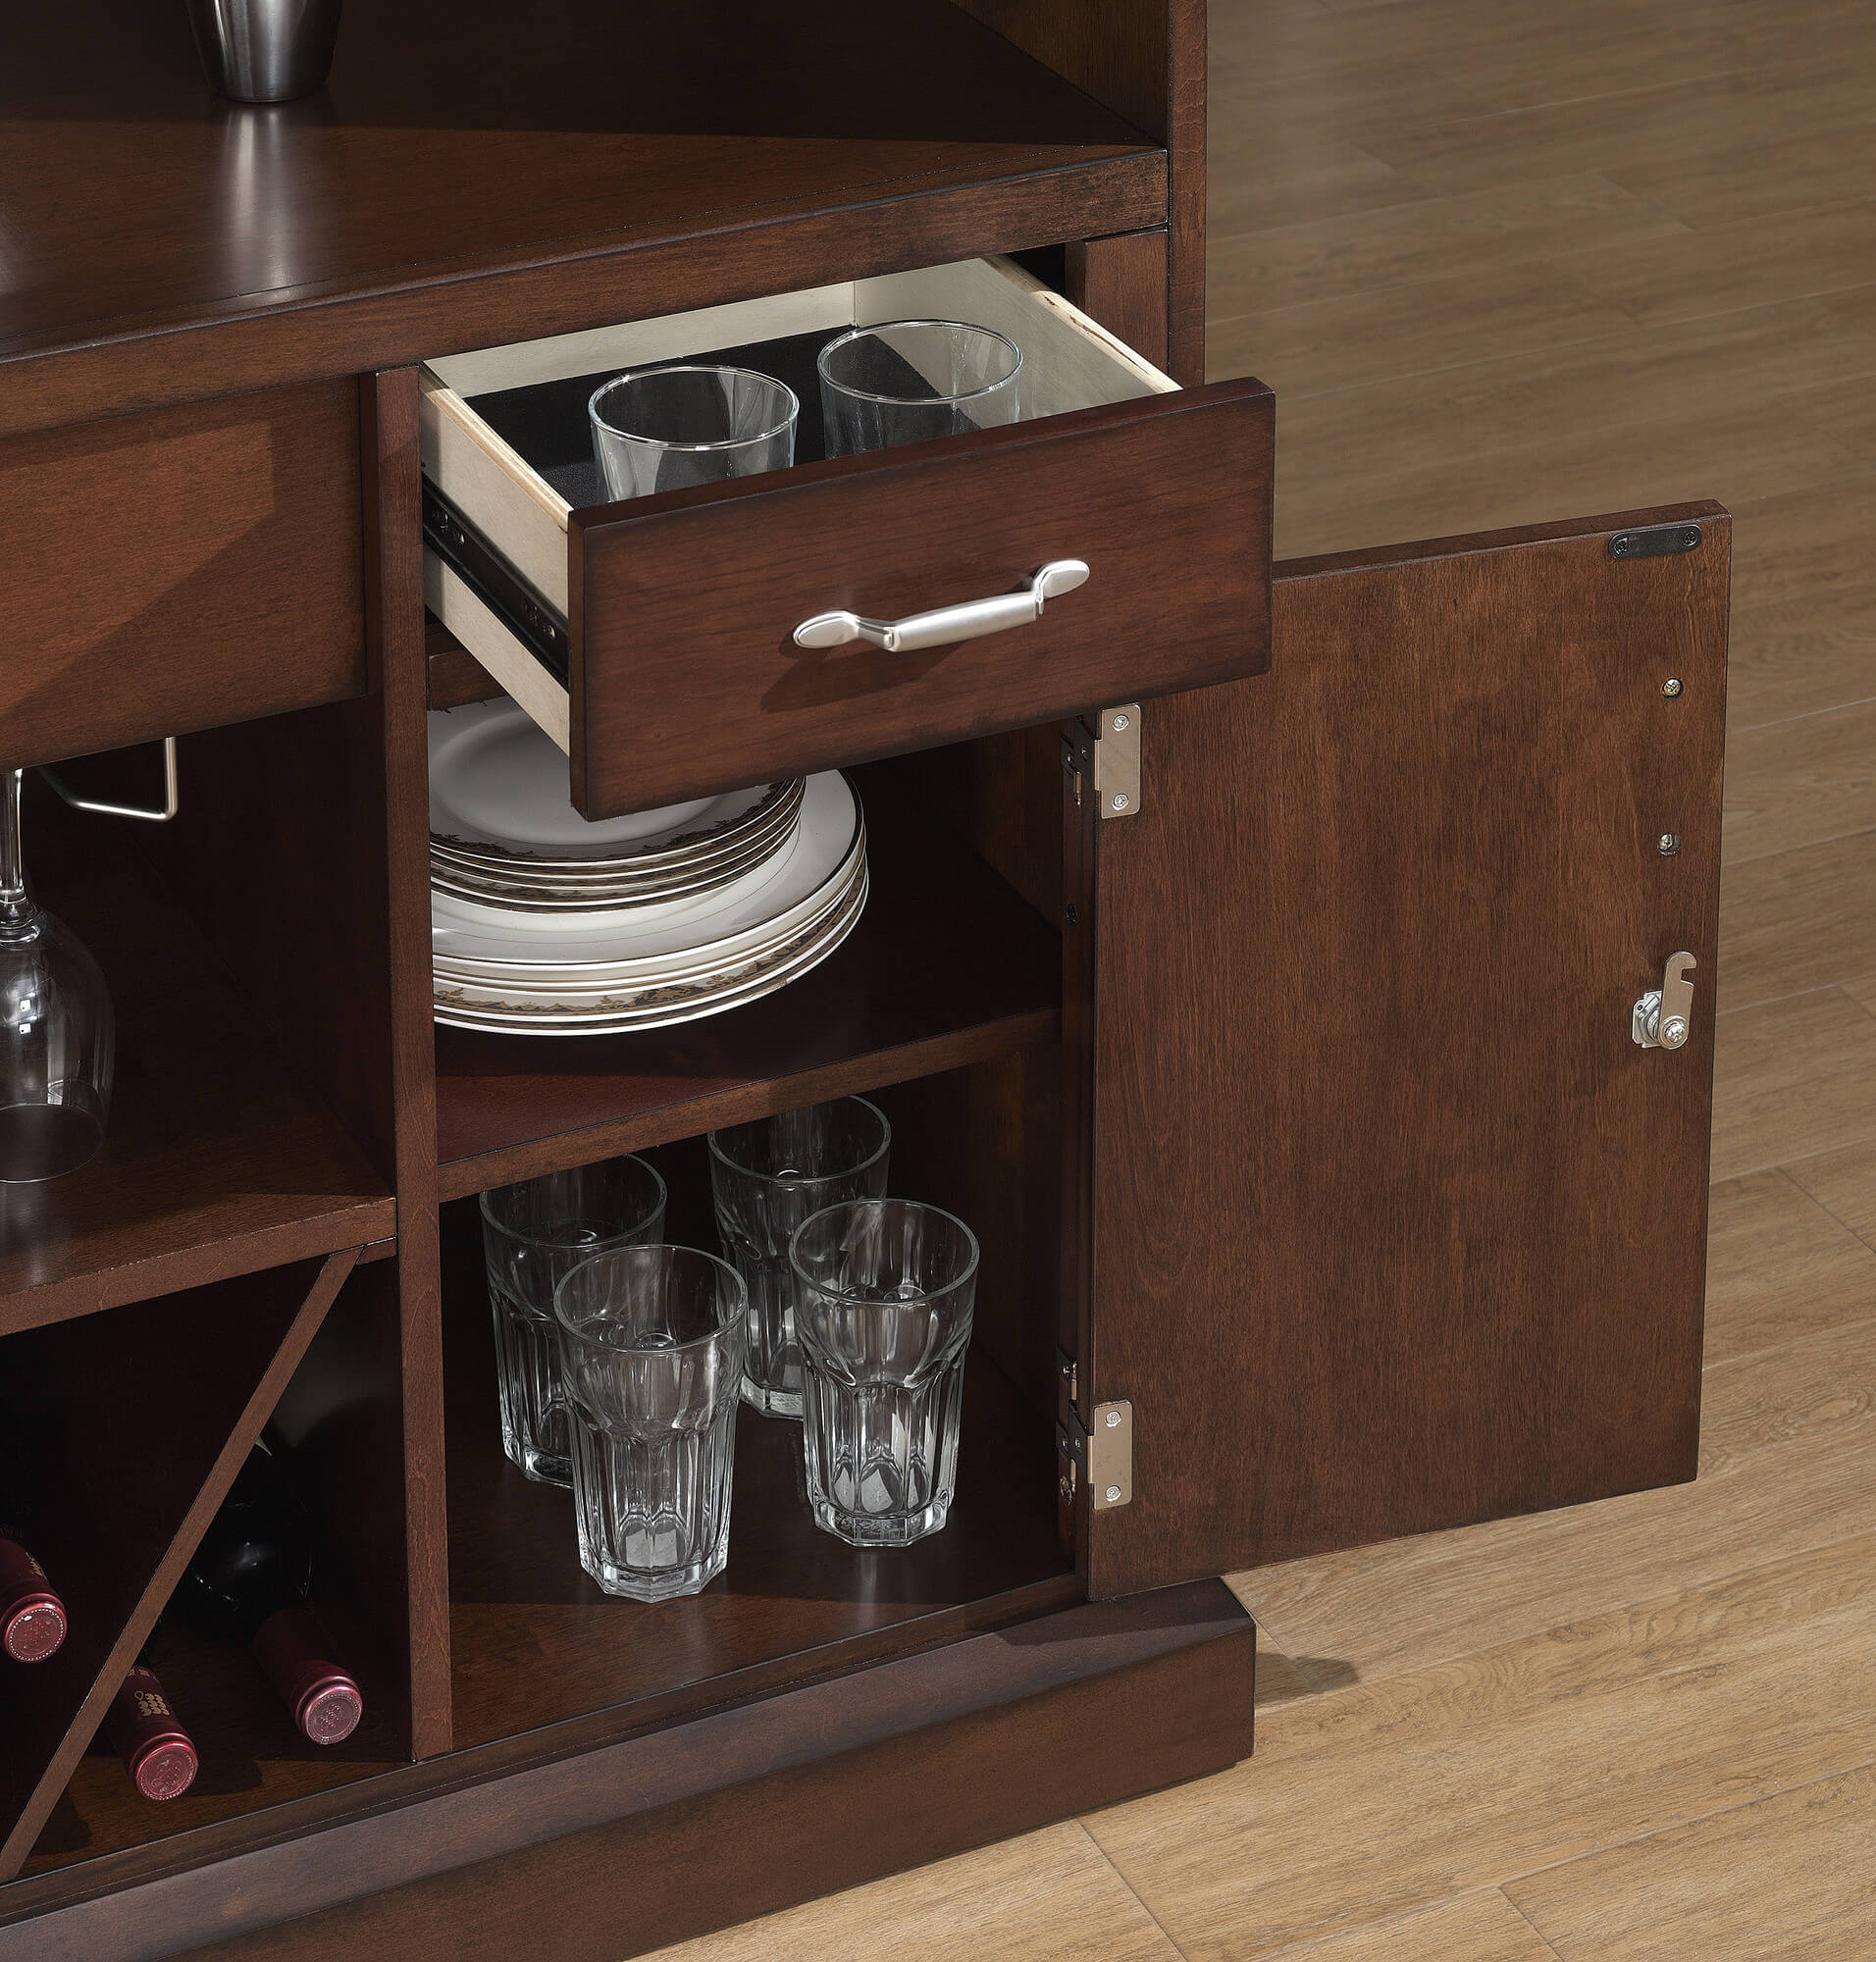 Behind the bar view - This is a beautiful home bar unit with sturdy foot railing, extensive storage including a wine rack and locking storage, and sturdy construction.